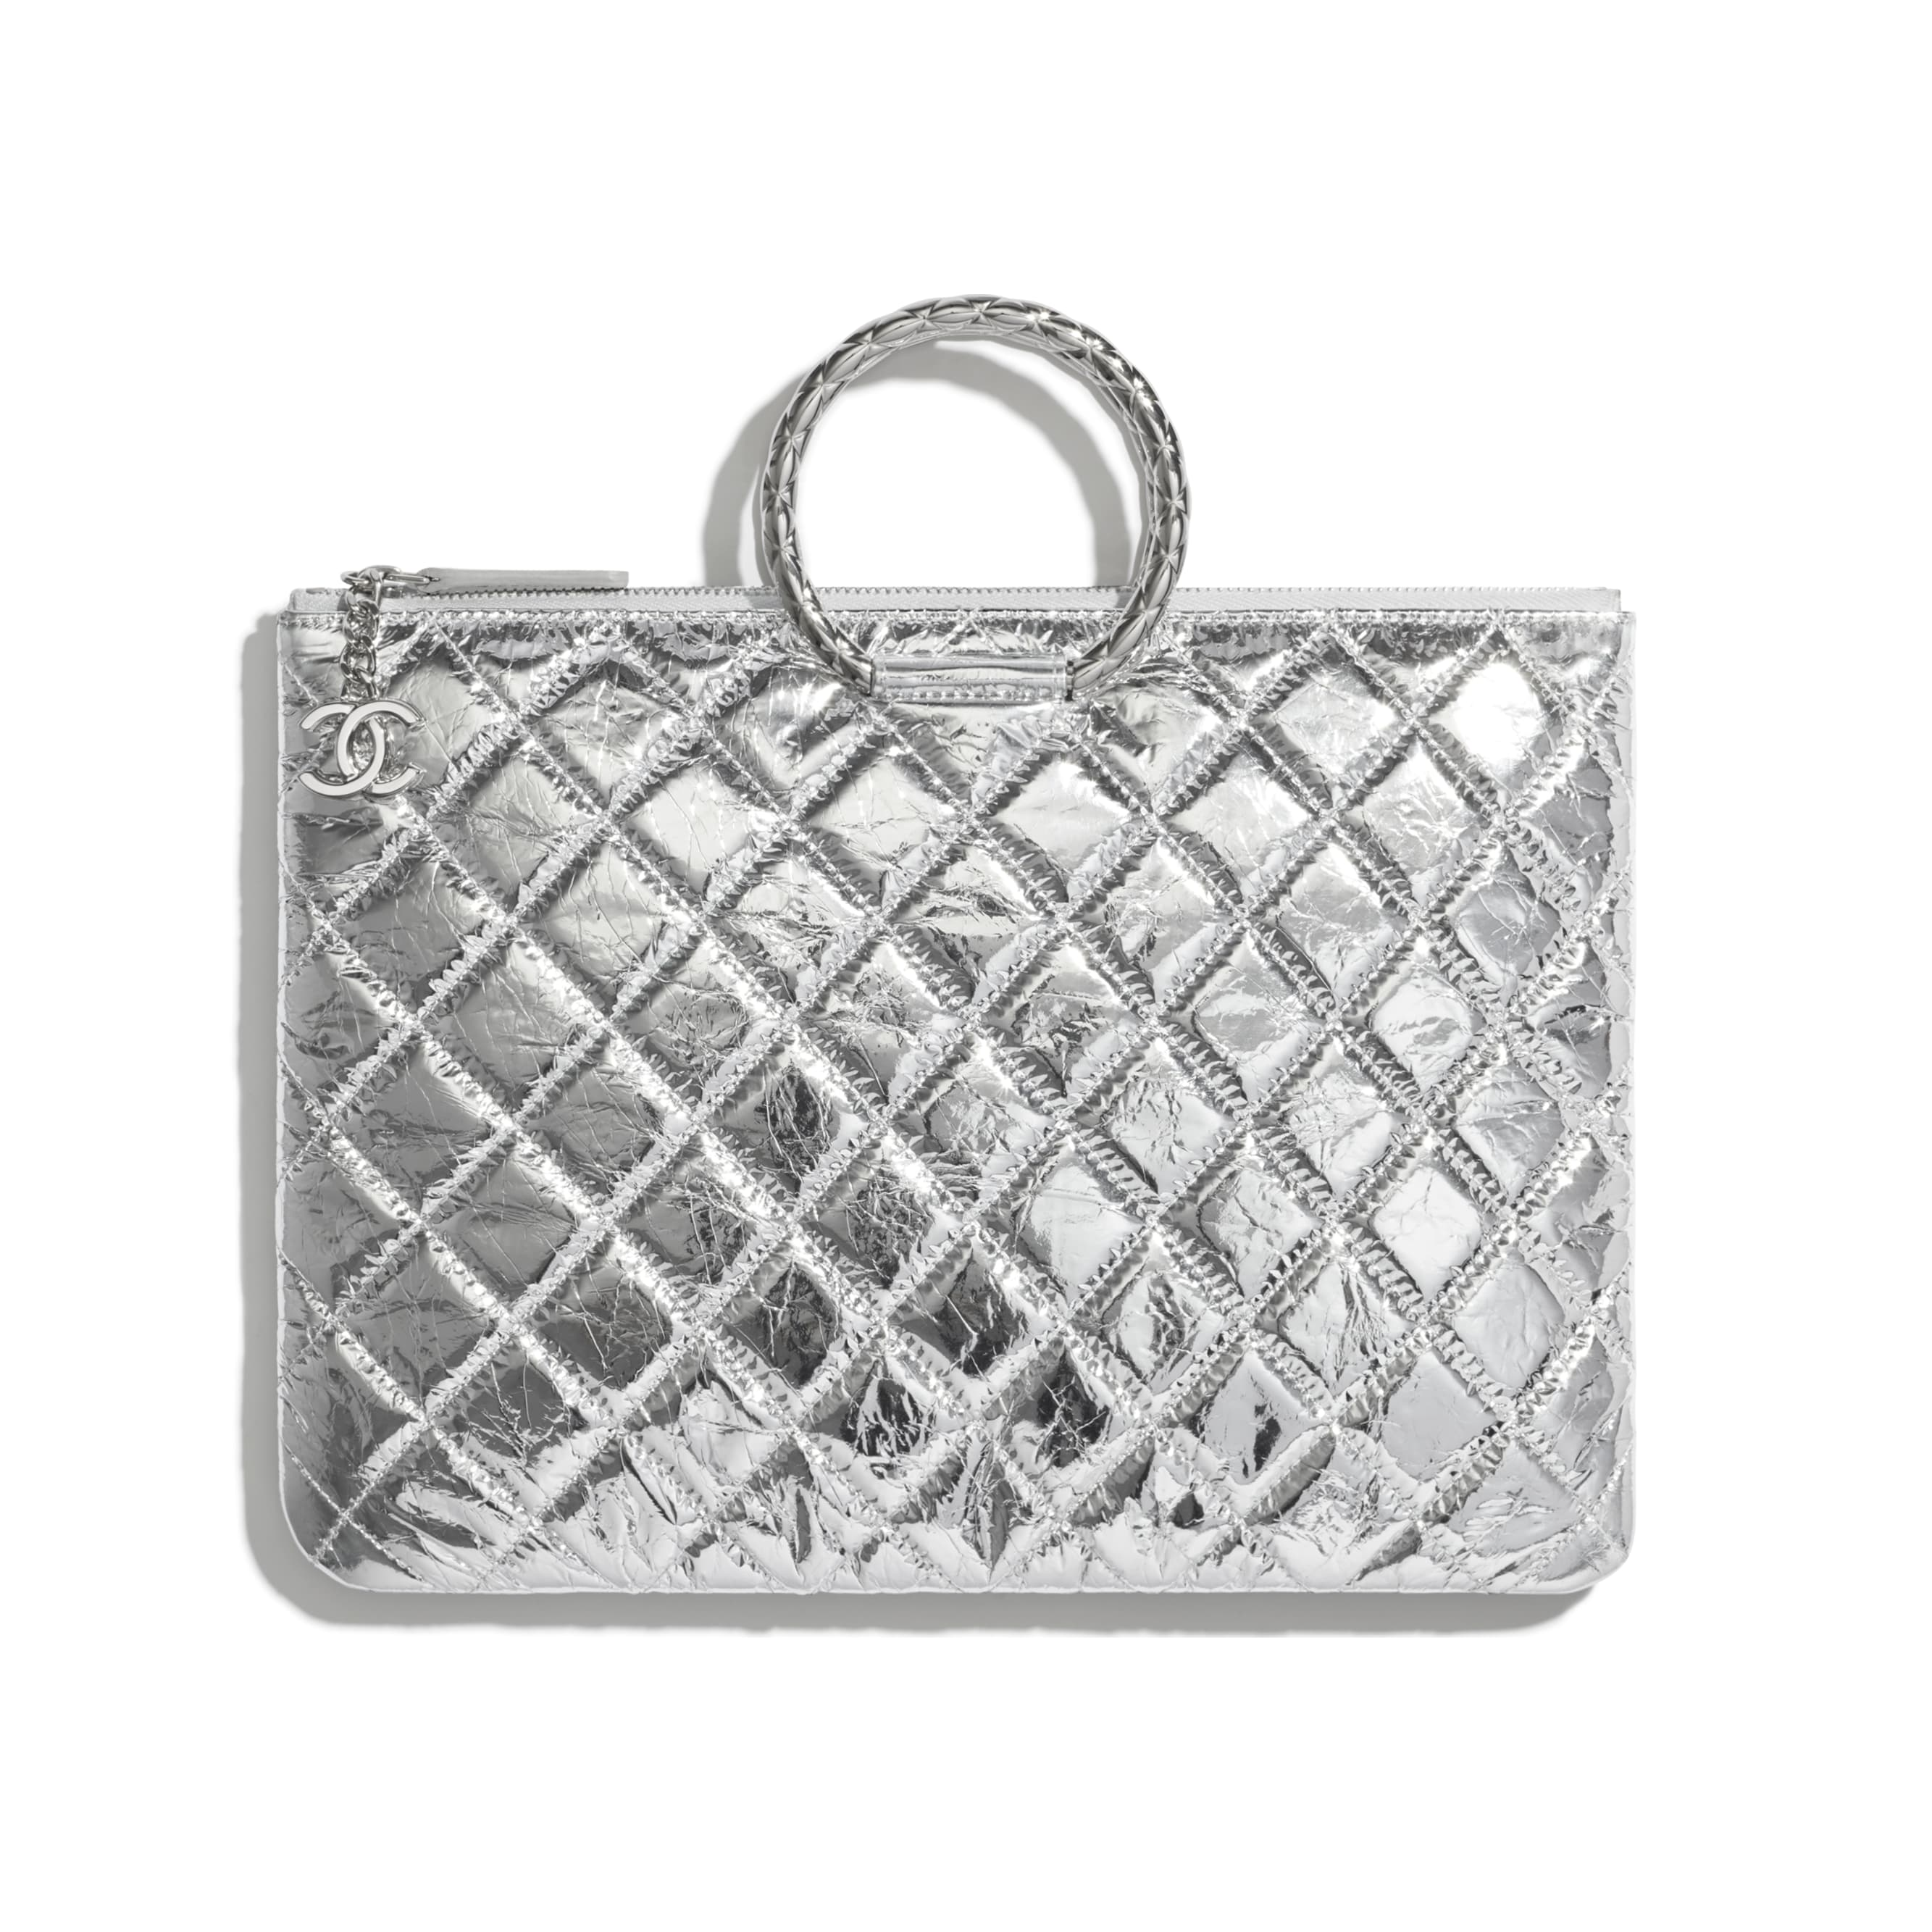 Pouch - Silver - Metallic Crumpled Goatskin & Silver-Tone Metal - CHANEL - Default view - see standard sized version